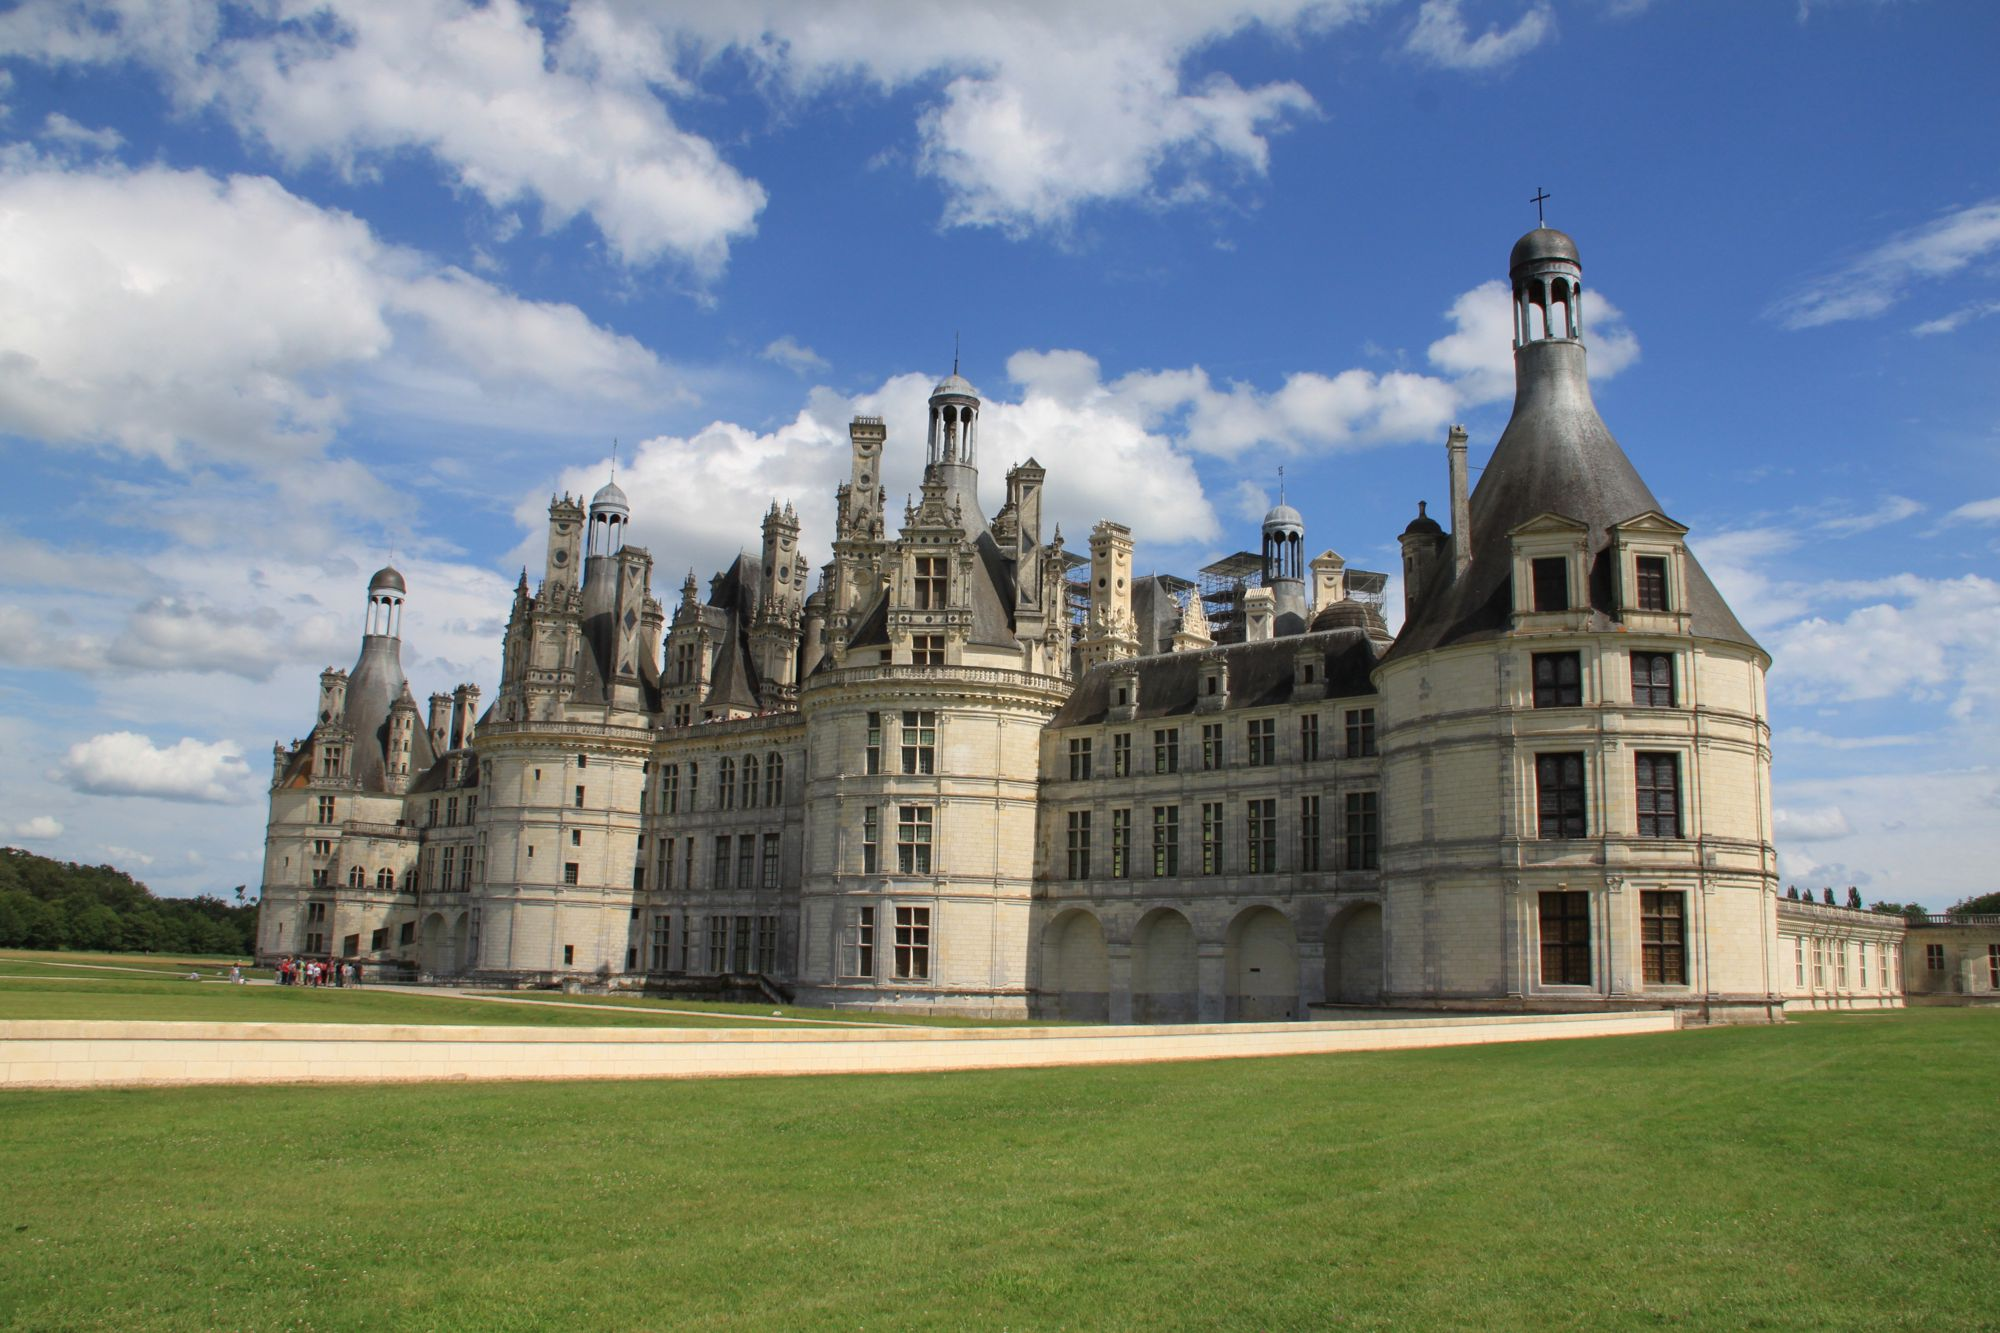 The perfect French camping destination for exploring the nation's castles, poised between the castles of Chambord and Cheverny.